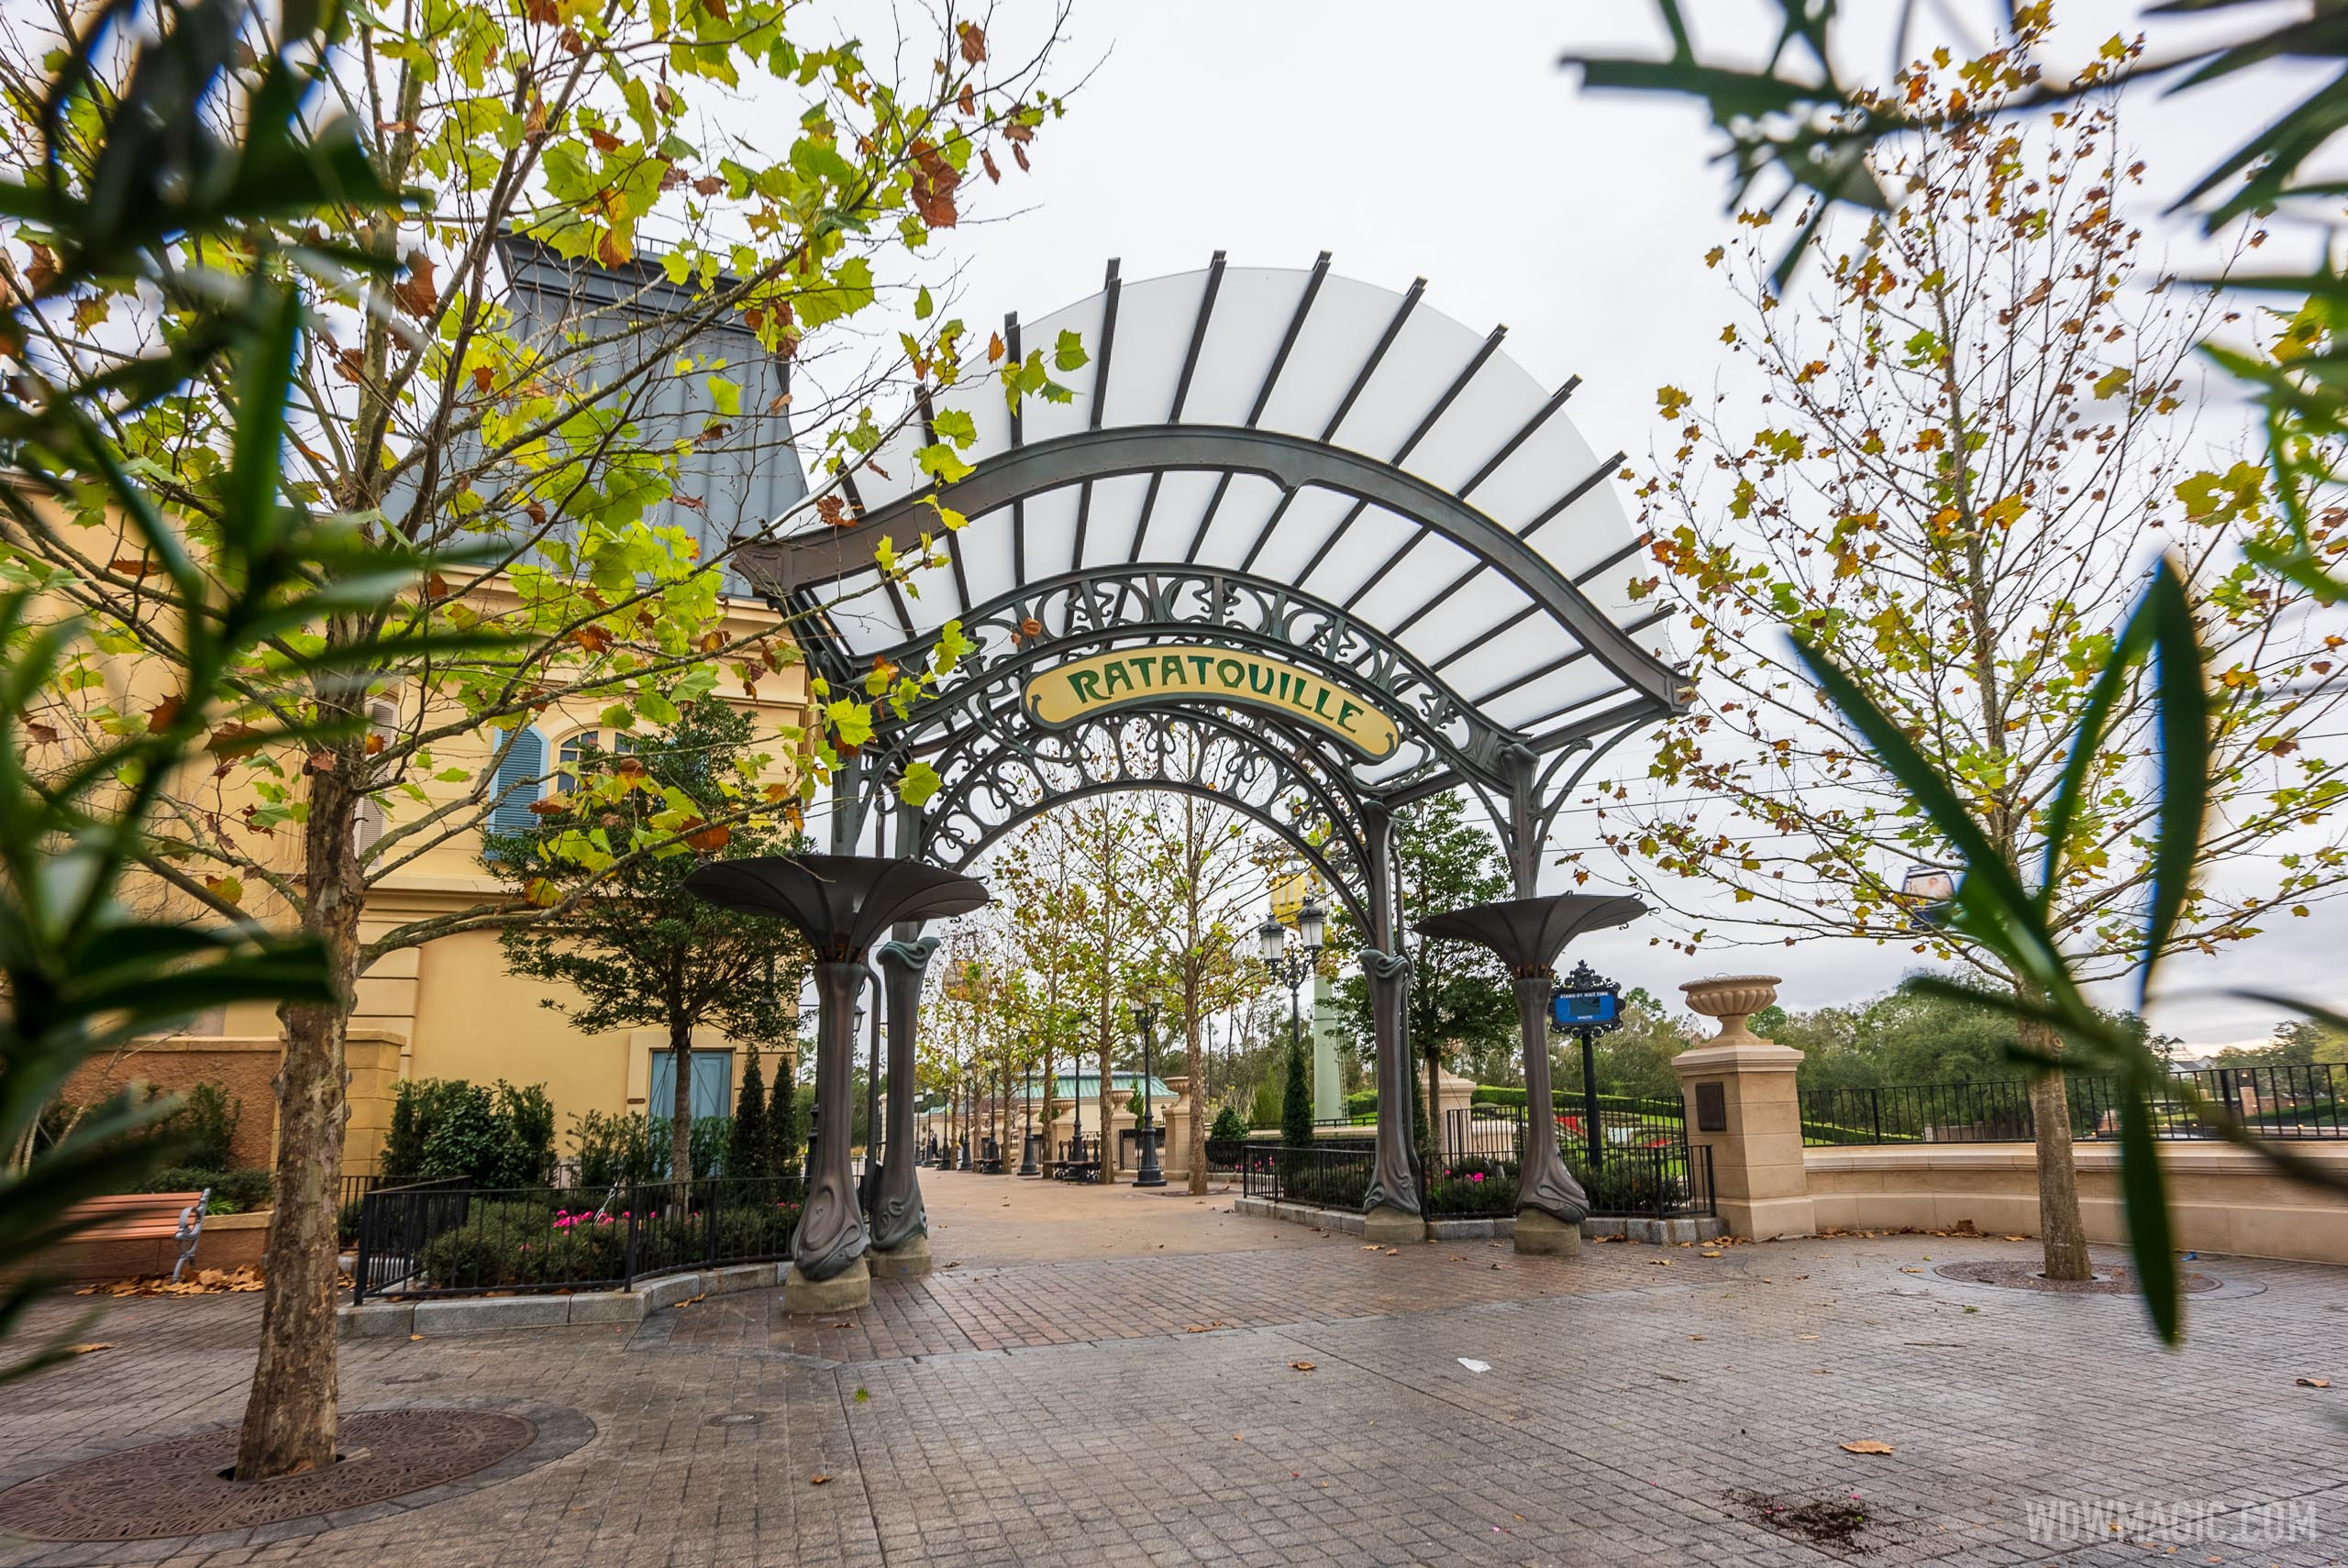 Construction walls down at Remy's Ratatouille Adventure entrance - January 12 2021